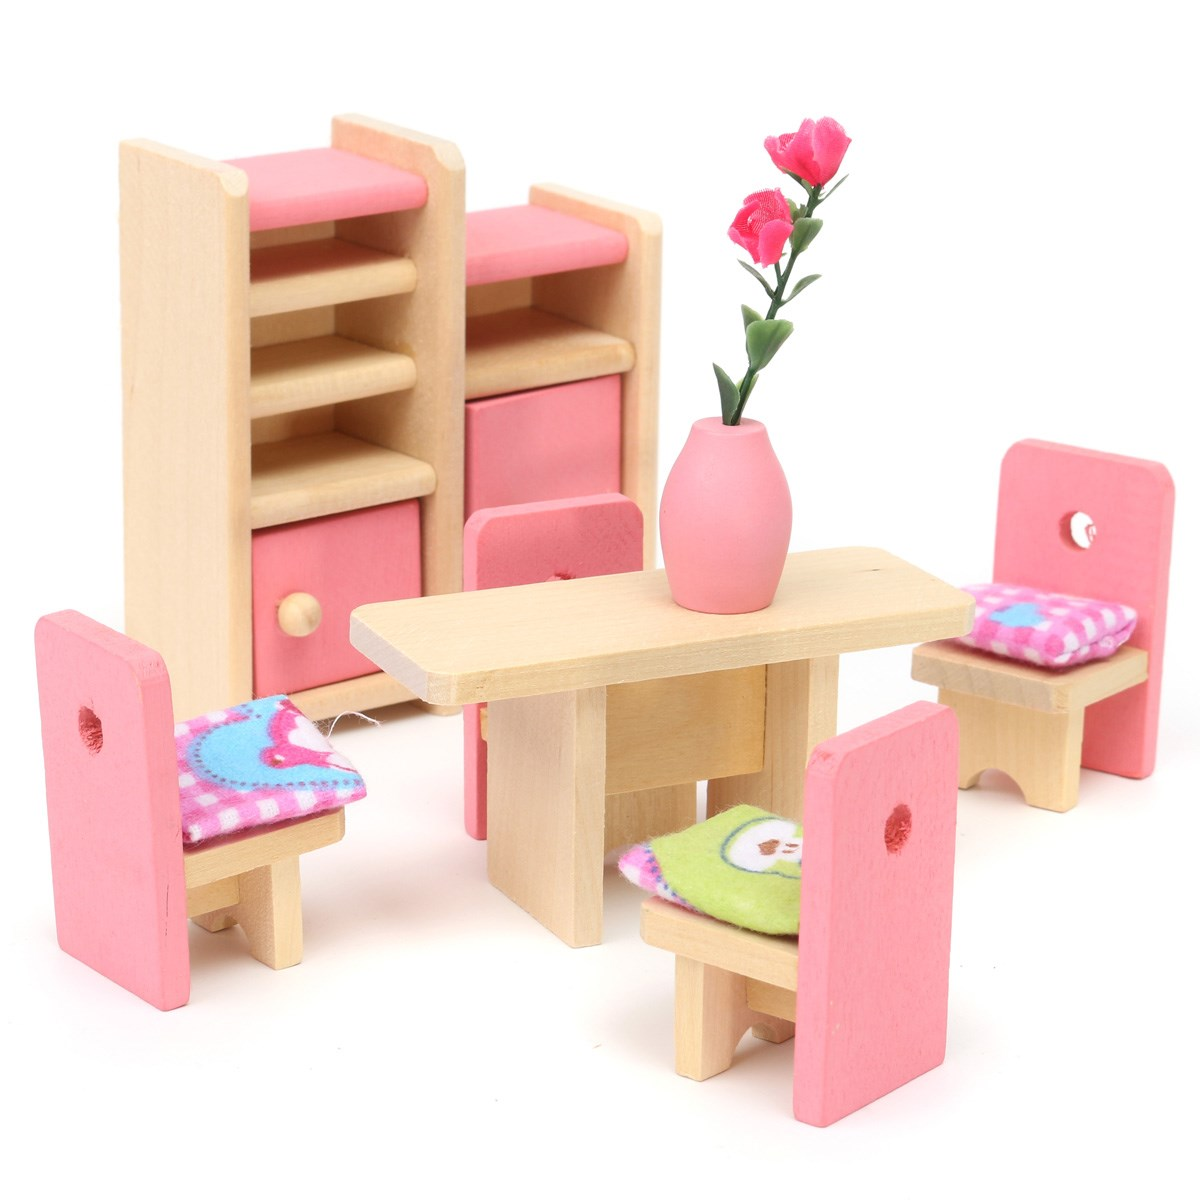 dolls house furniture aliexpress.com : buy wooden delicate dollhouse furniture toys miniature for  kids children DLOMZQU